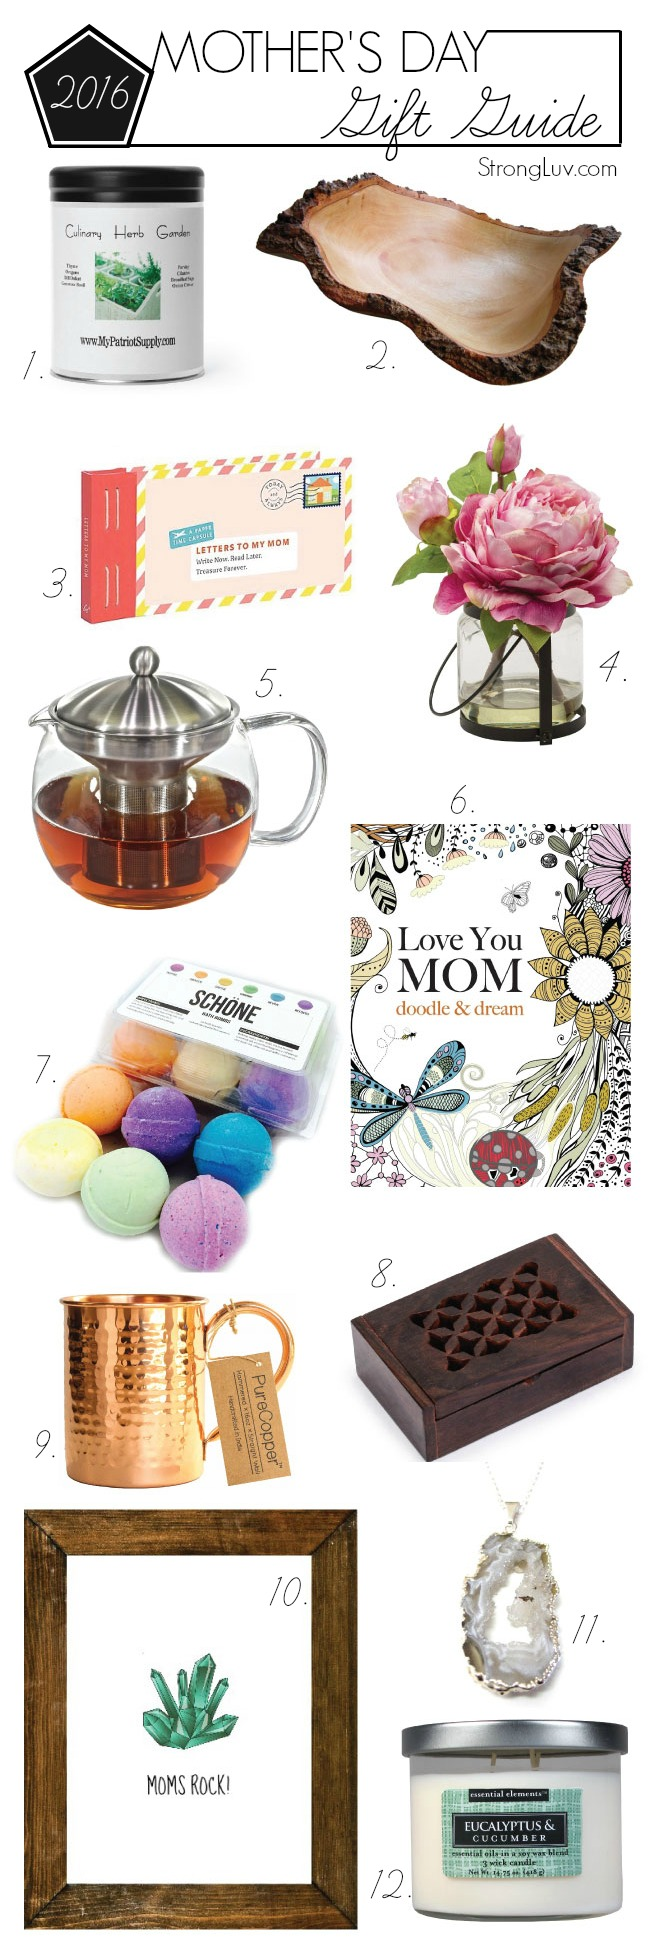 best gifts mothers day 2016